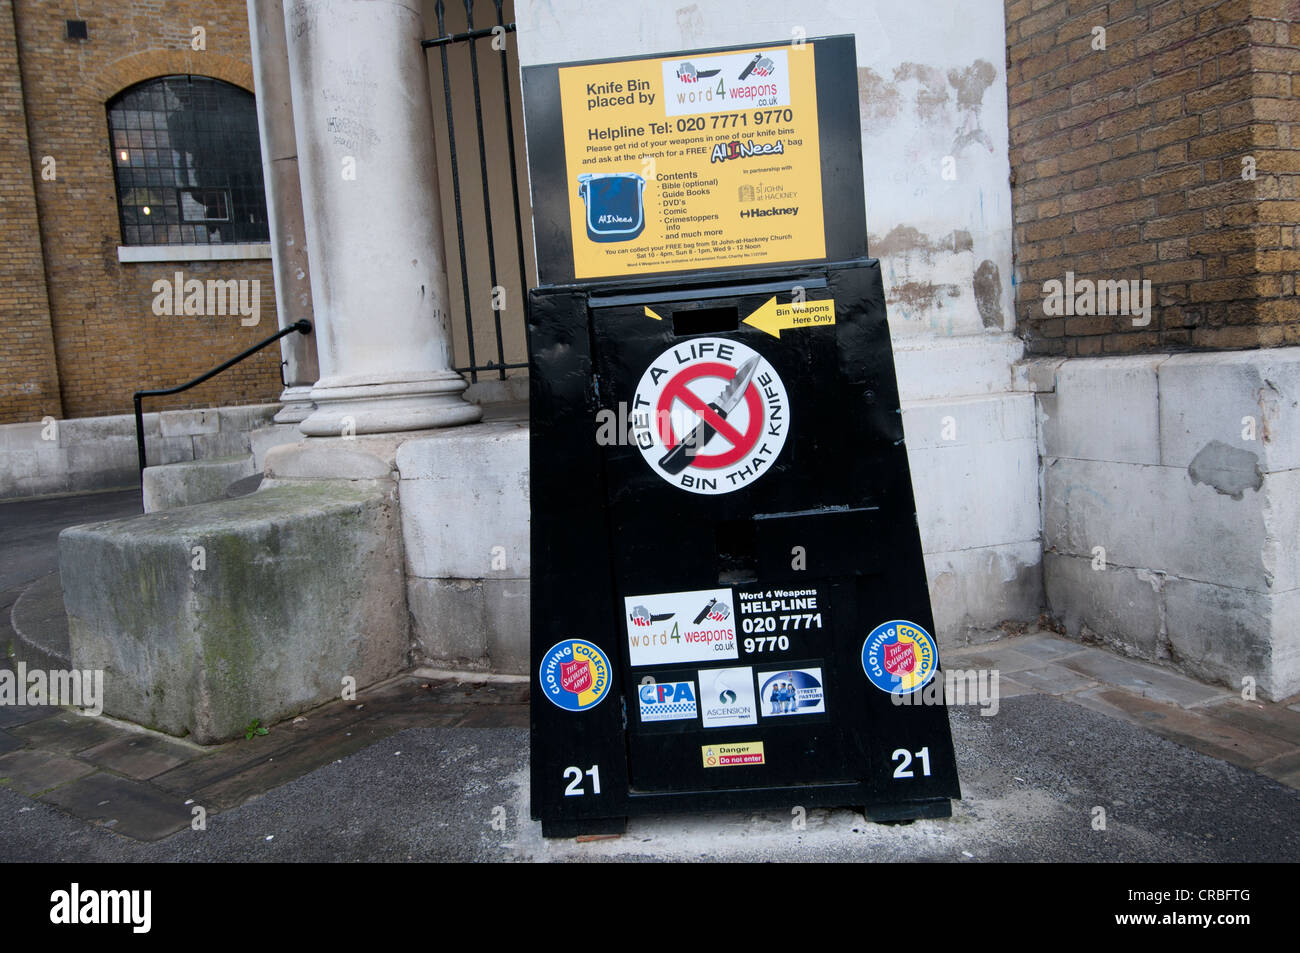 Hackney. Bin for knives where they can be deposited anonymously - Stock Image